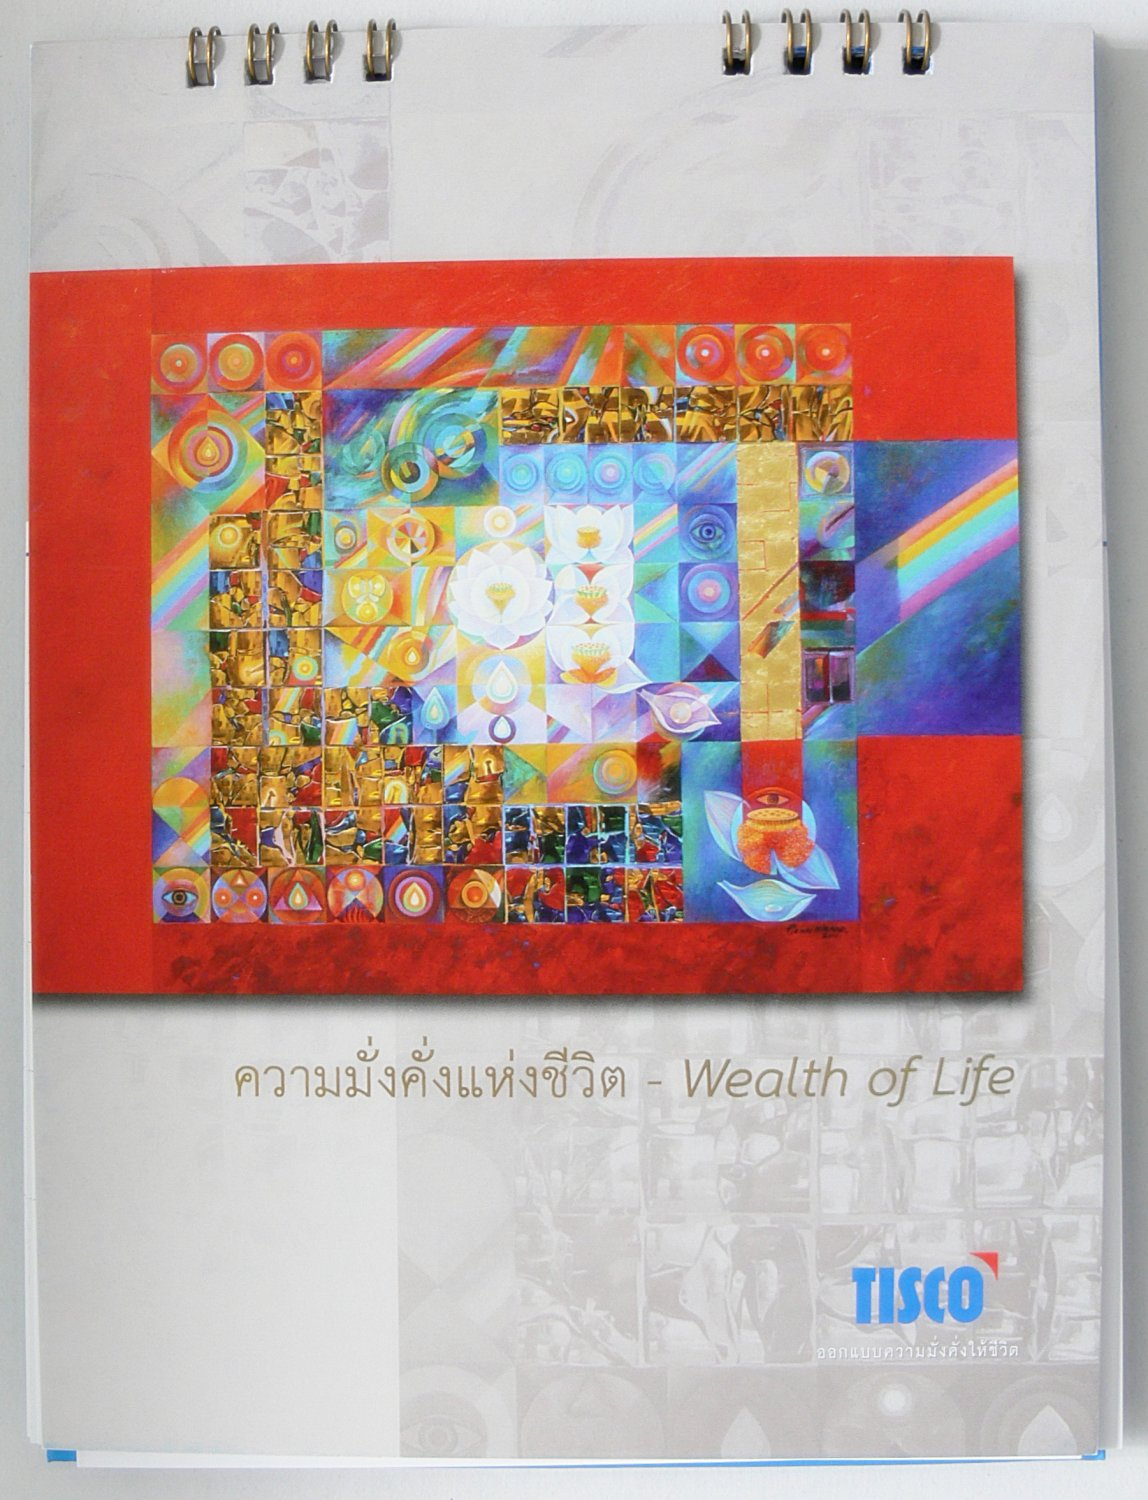 Desk Calendar 2012 Thai Thailand Abstract Pictures Culture Wealth Happiness Life